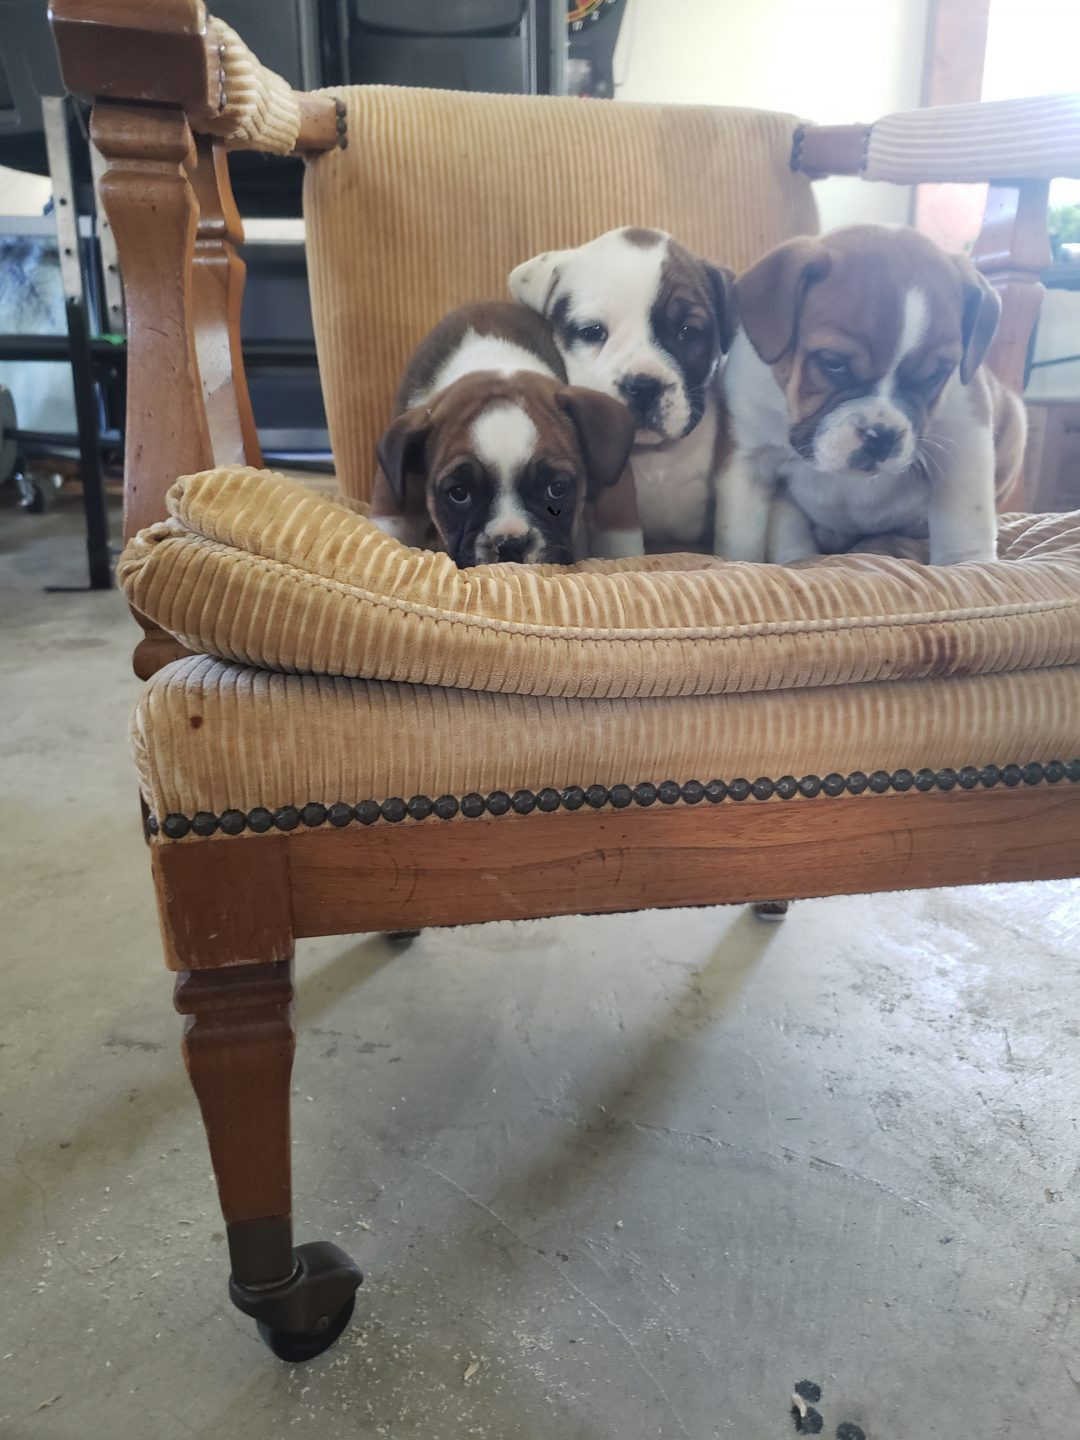 REX - male English Bulldog pup for sale in Nappanee, Indiana